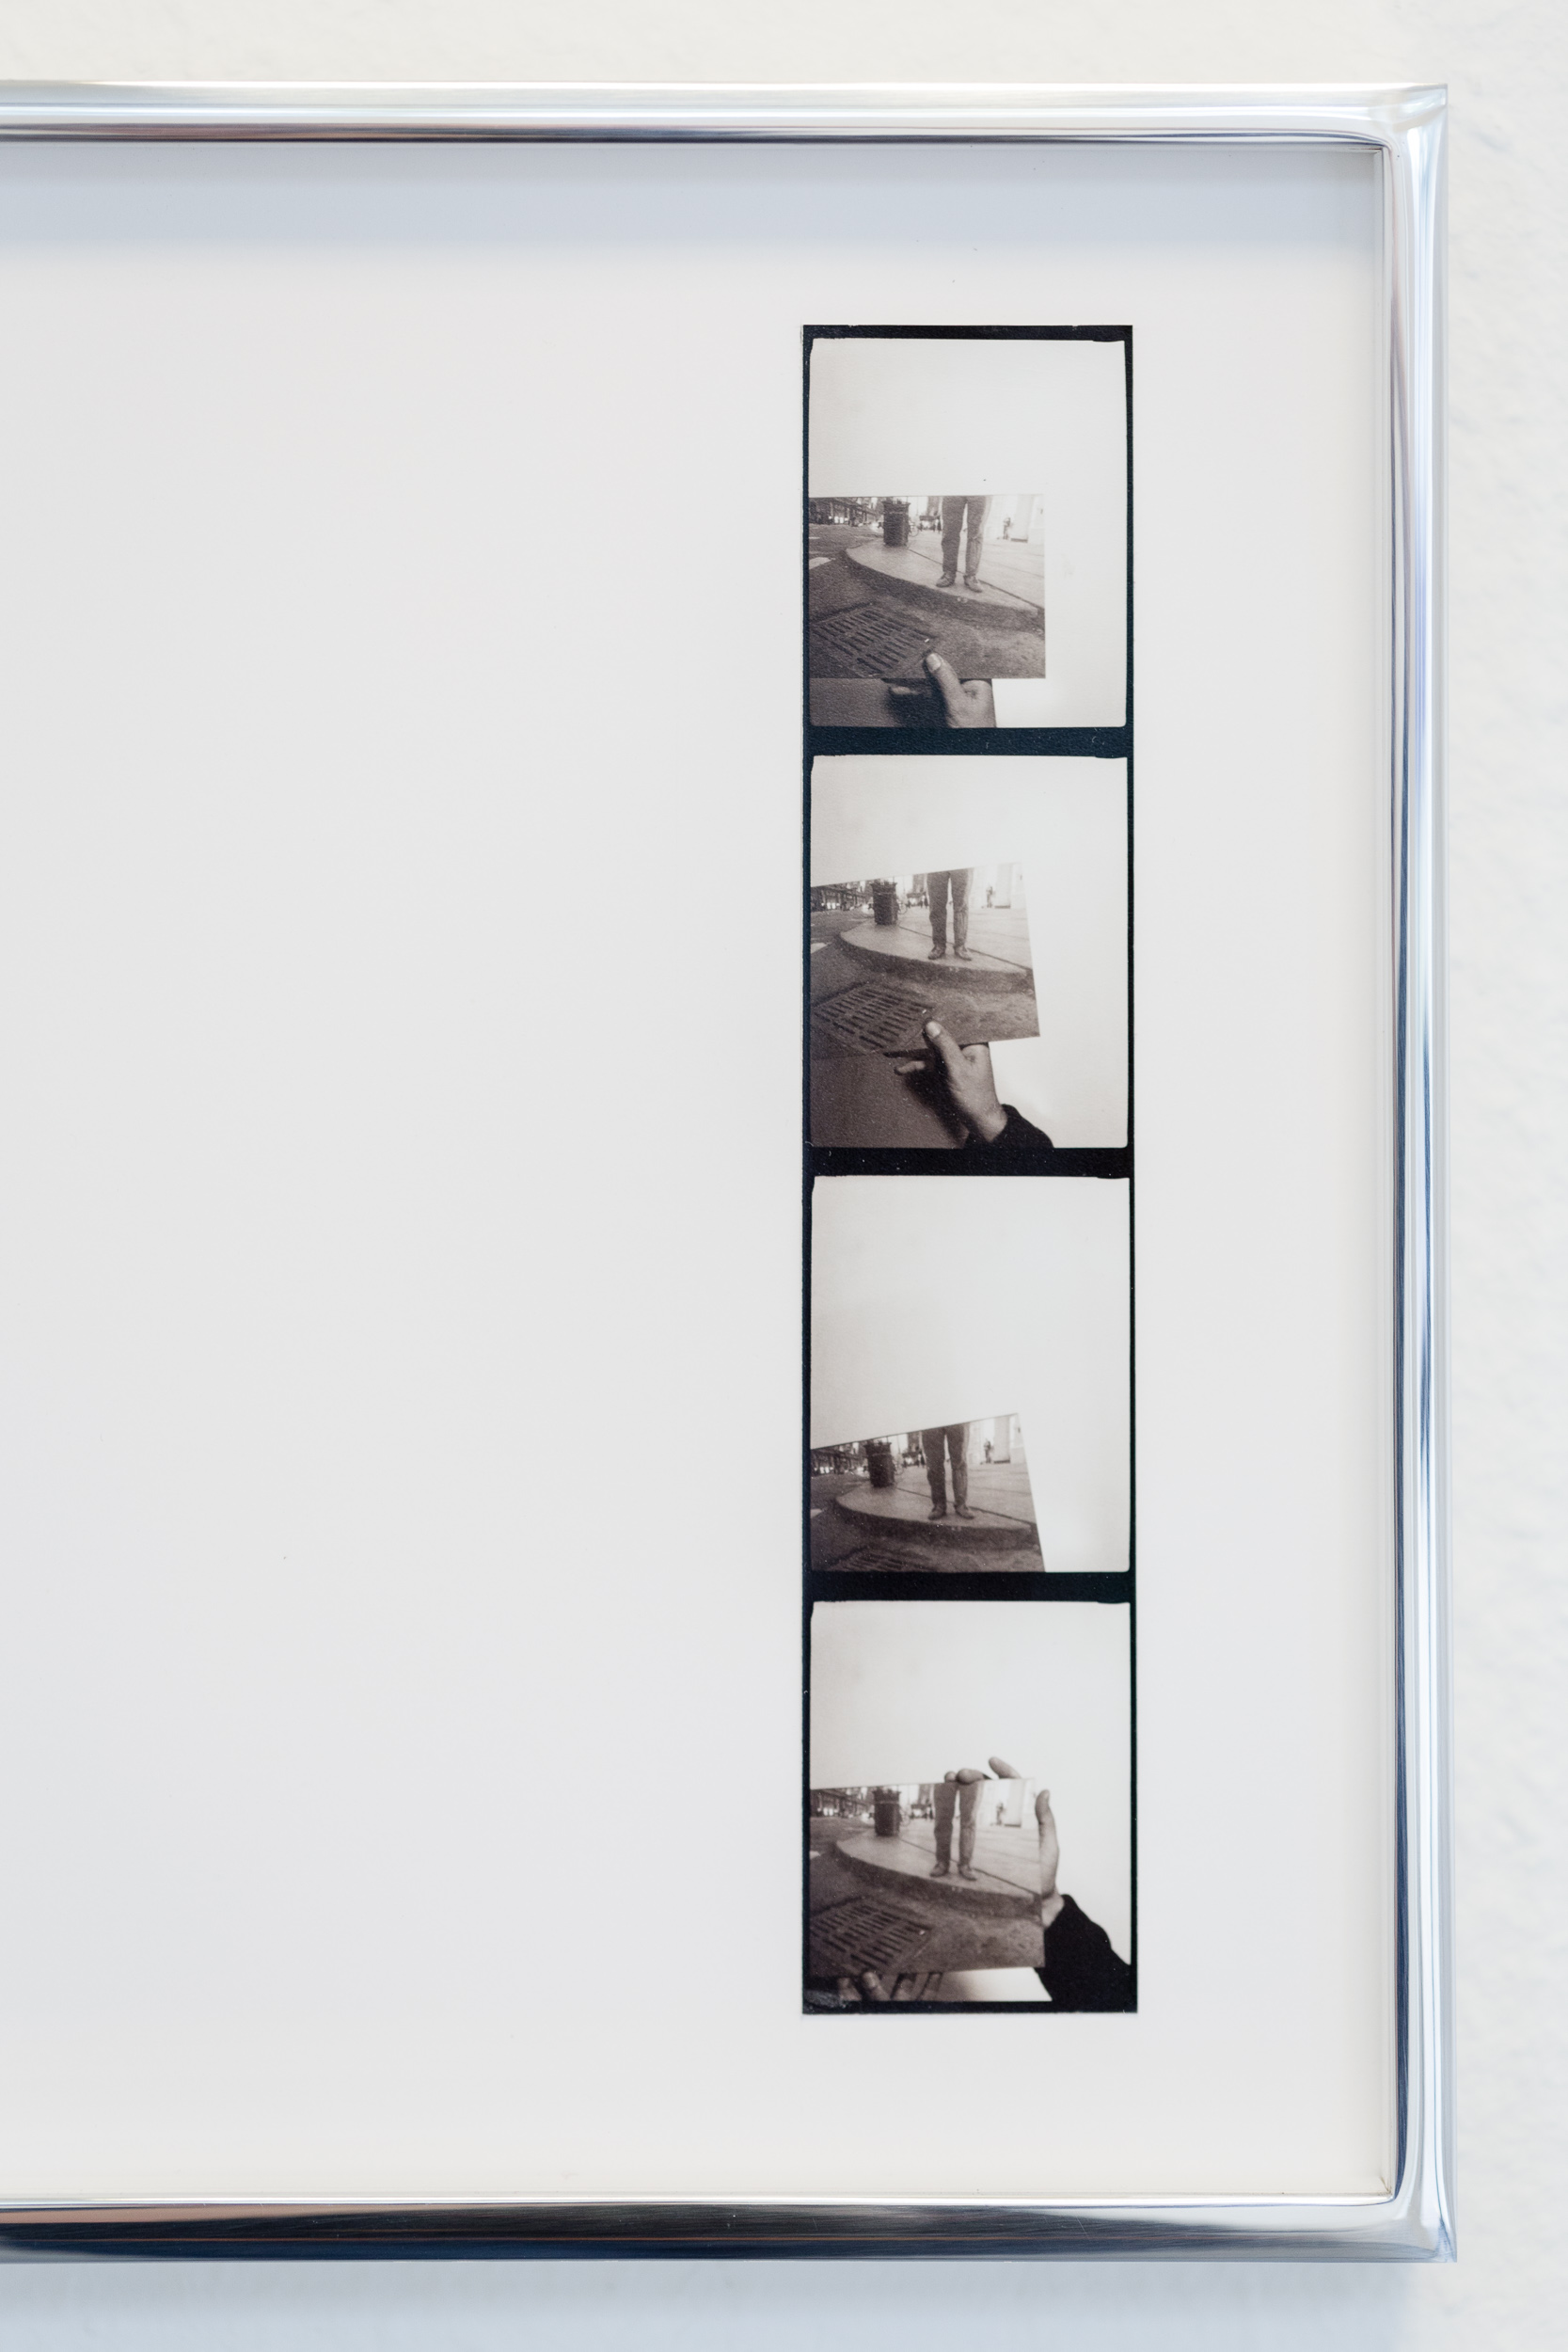 Vittorio Santoro,  Four Speakers' Corners, I , (detail), 2014, four photo booth stripes, each framed in a welded aluminum frame (25x25 cm), silver-grey adhesive tape on floor. Dimensions vary with installation  Photo: Kilian Bannwart